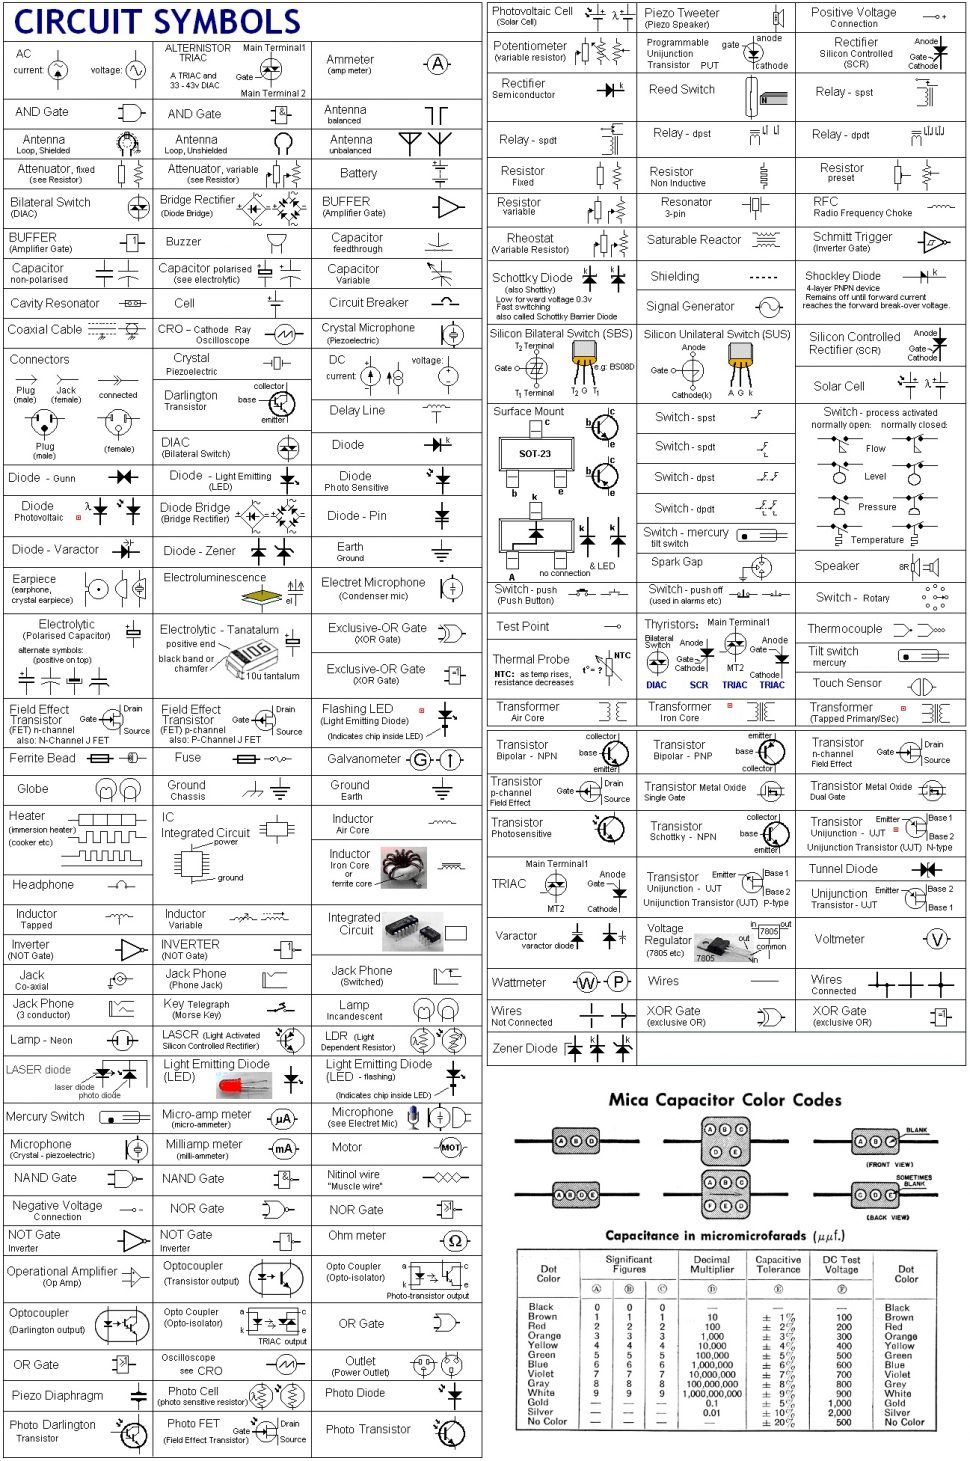 Electrical Wiring Australian Standards Manual Of Diagram Regulations Component Schematic Symbols And Meanings Download Rh Pinterest Com Rules